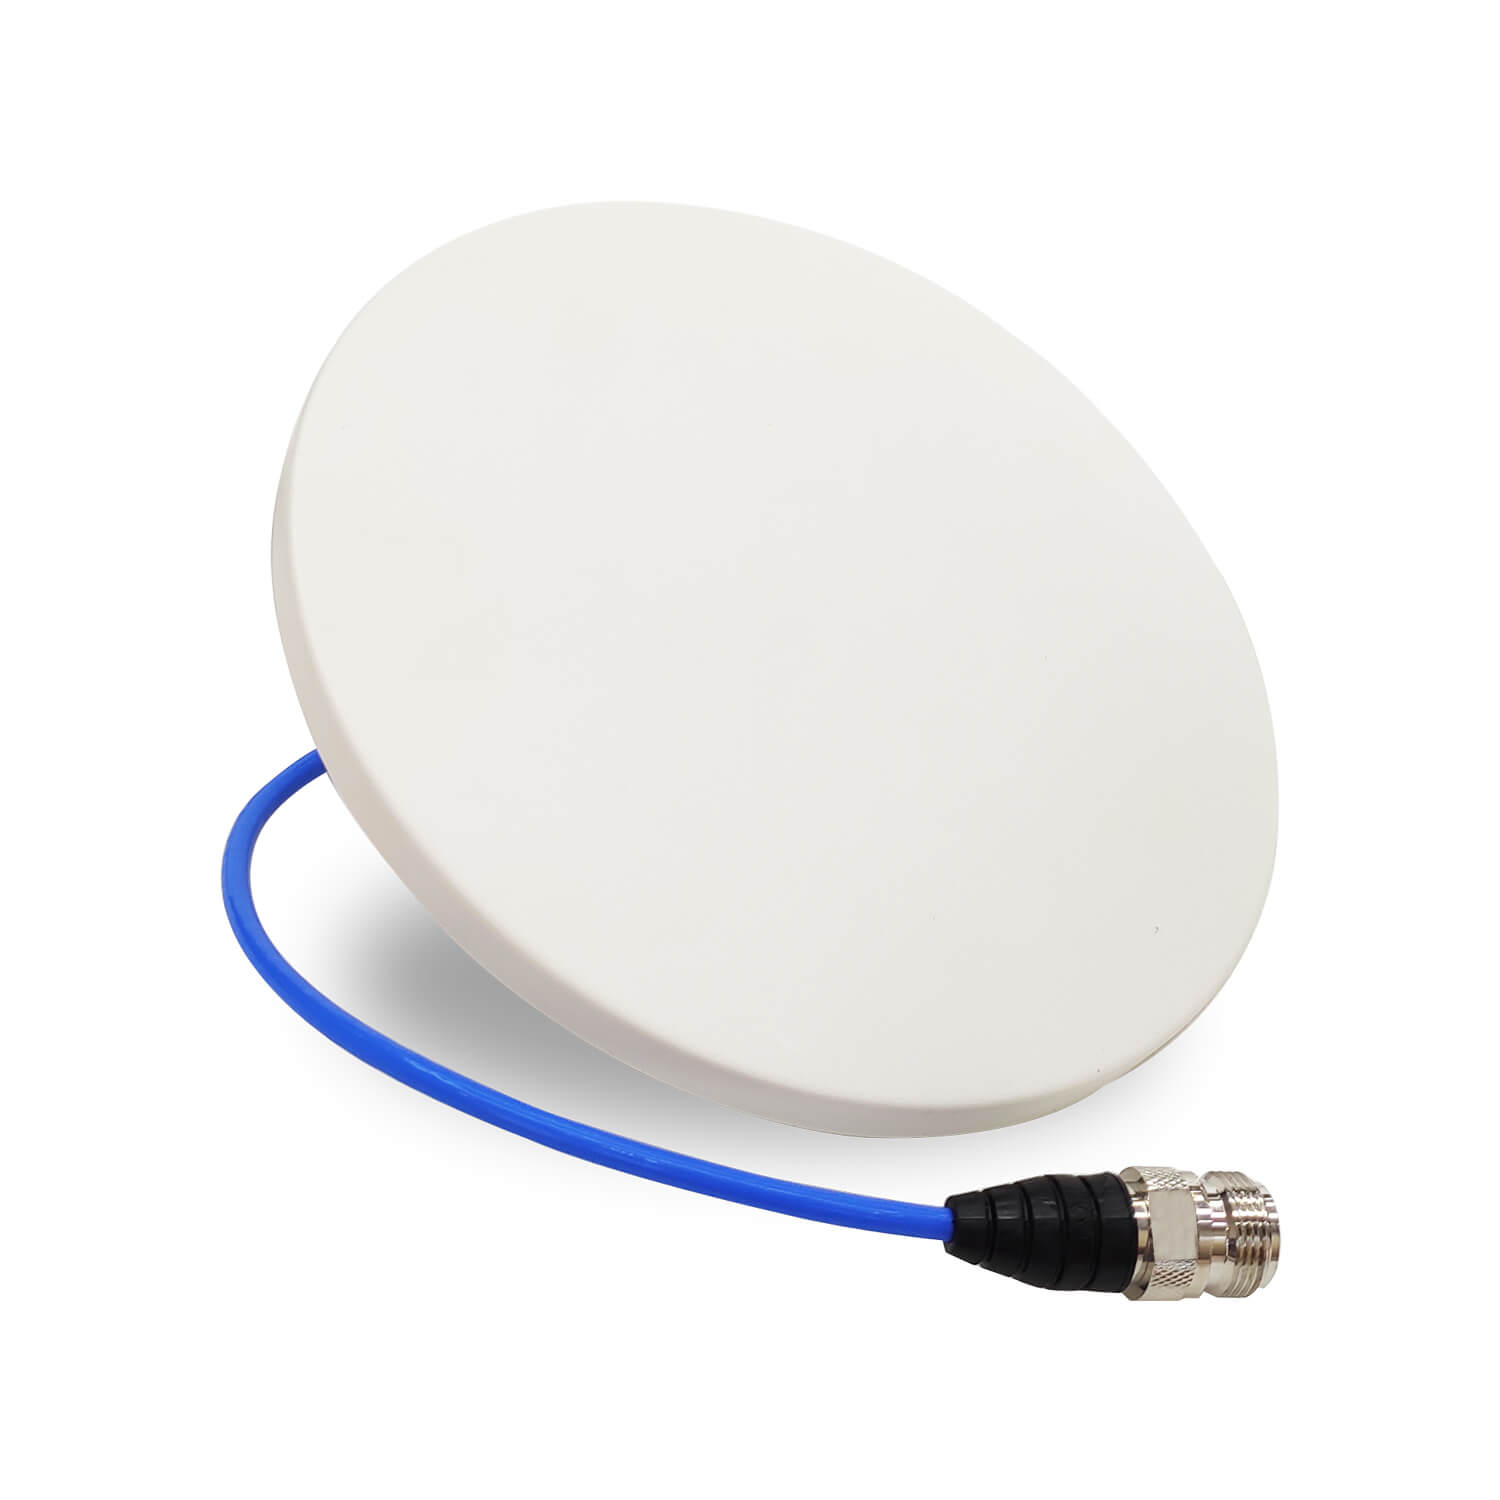 Hiboost ultra-thin indoor ceiling mount dome antenna-1